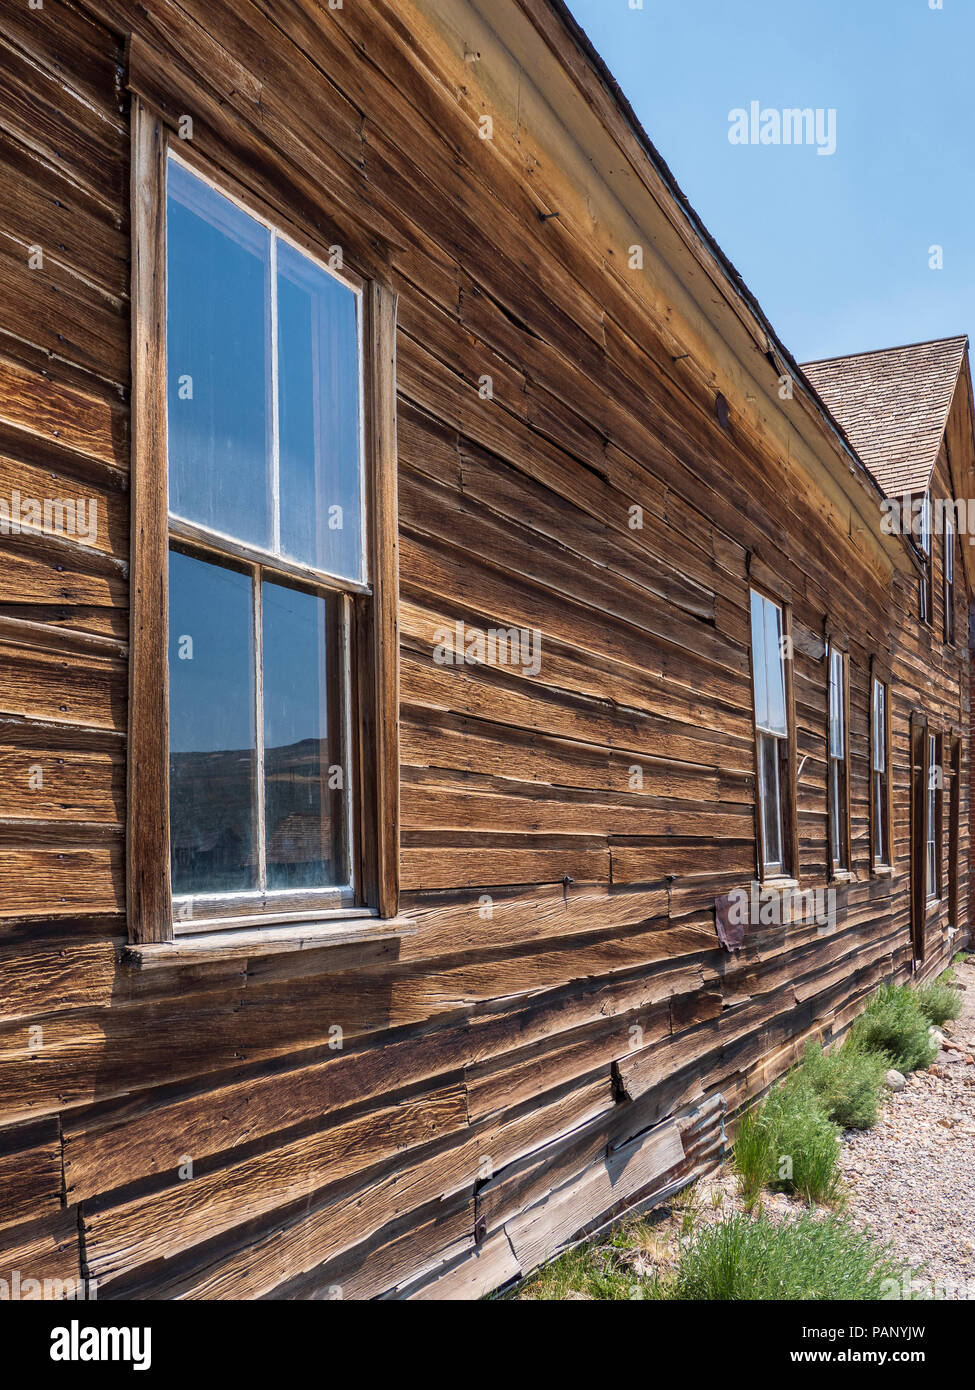 Windows and wood, Bodie ghost town, Bodie State Historic Park, California. - Stock Image